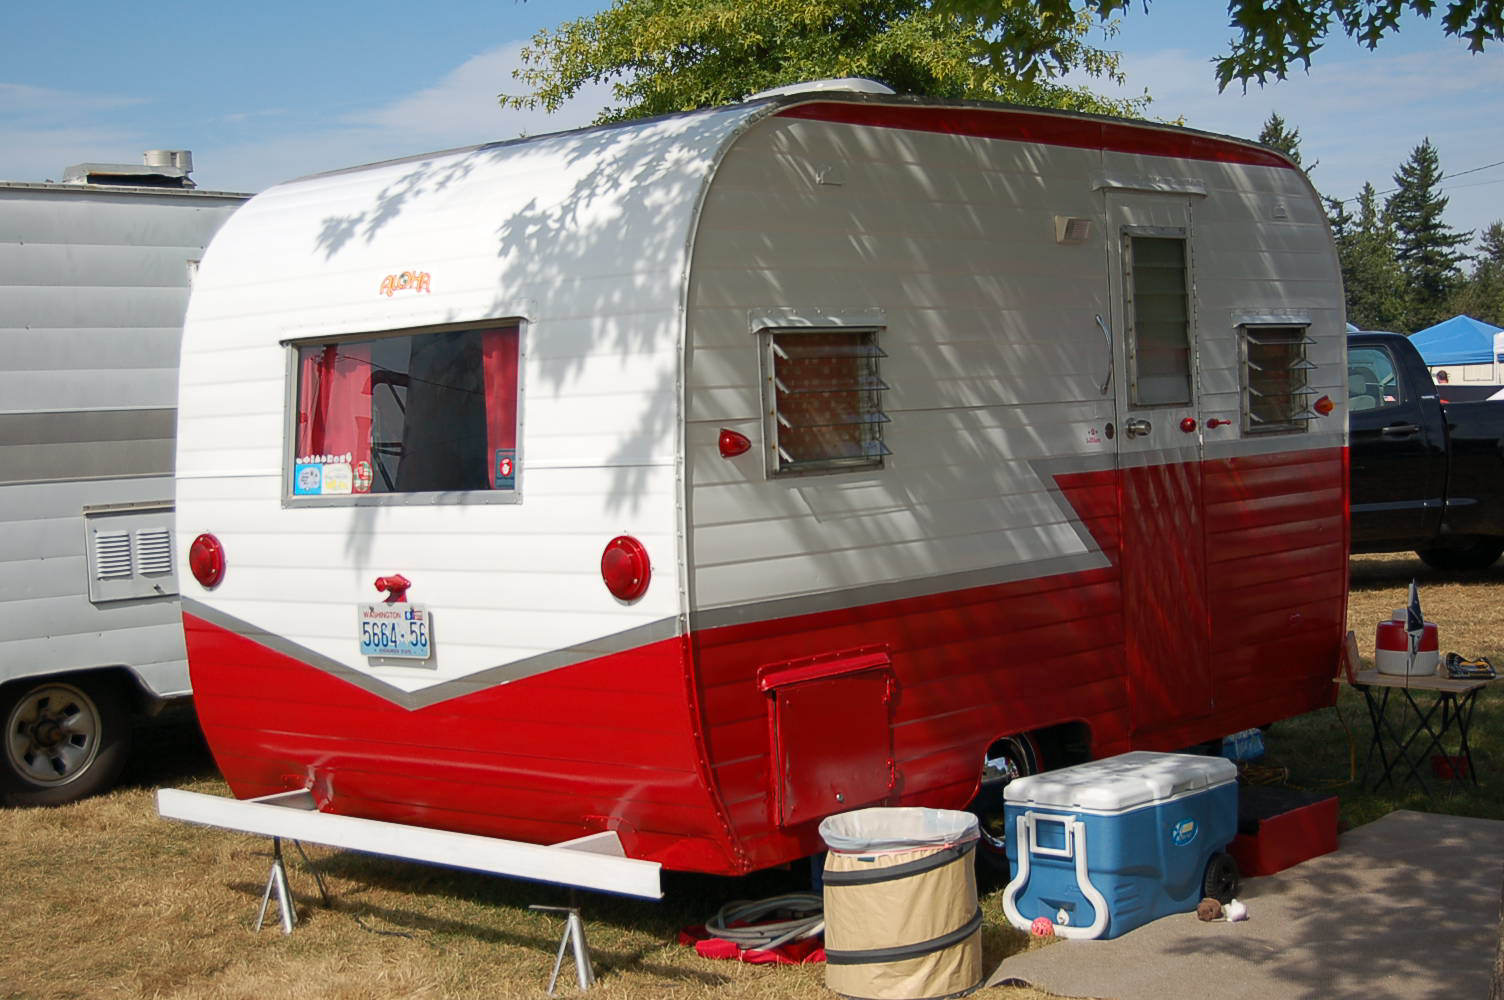 Vintage Aloha Trailer Pictures And